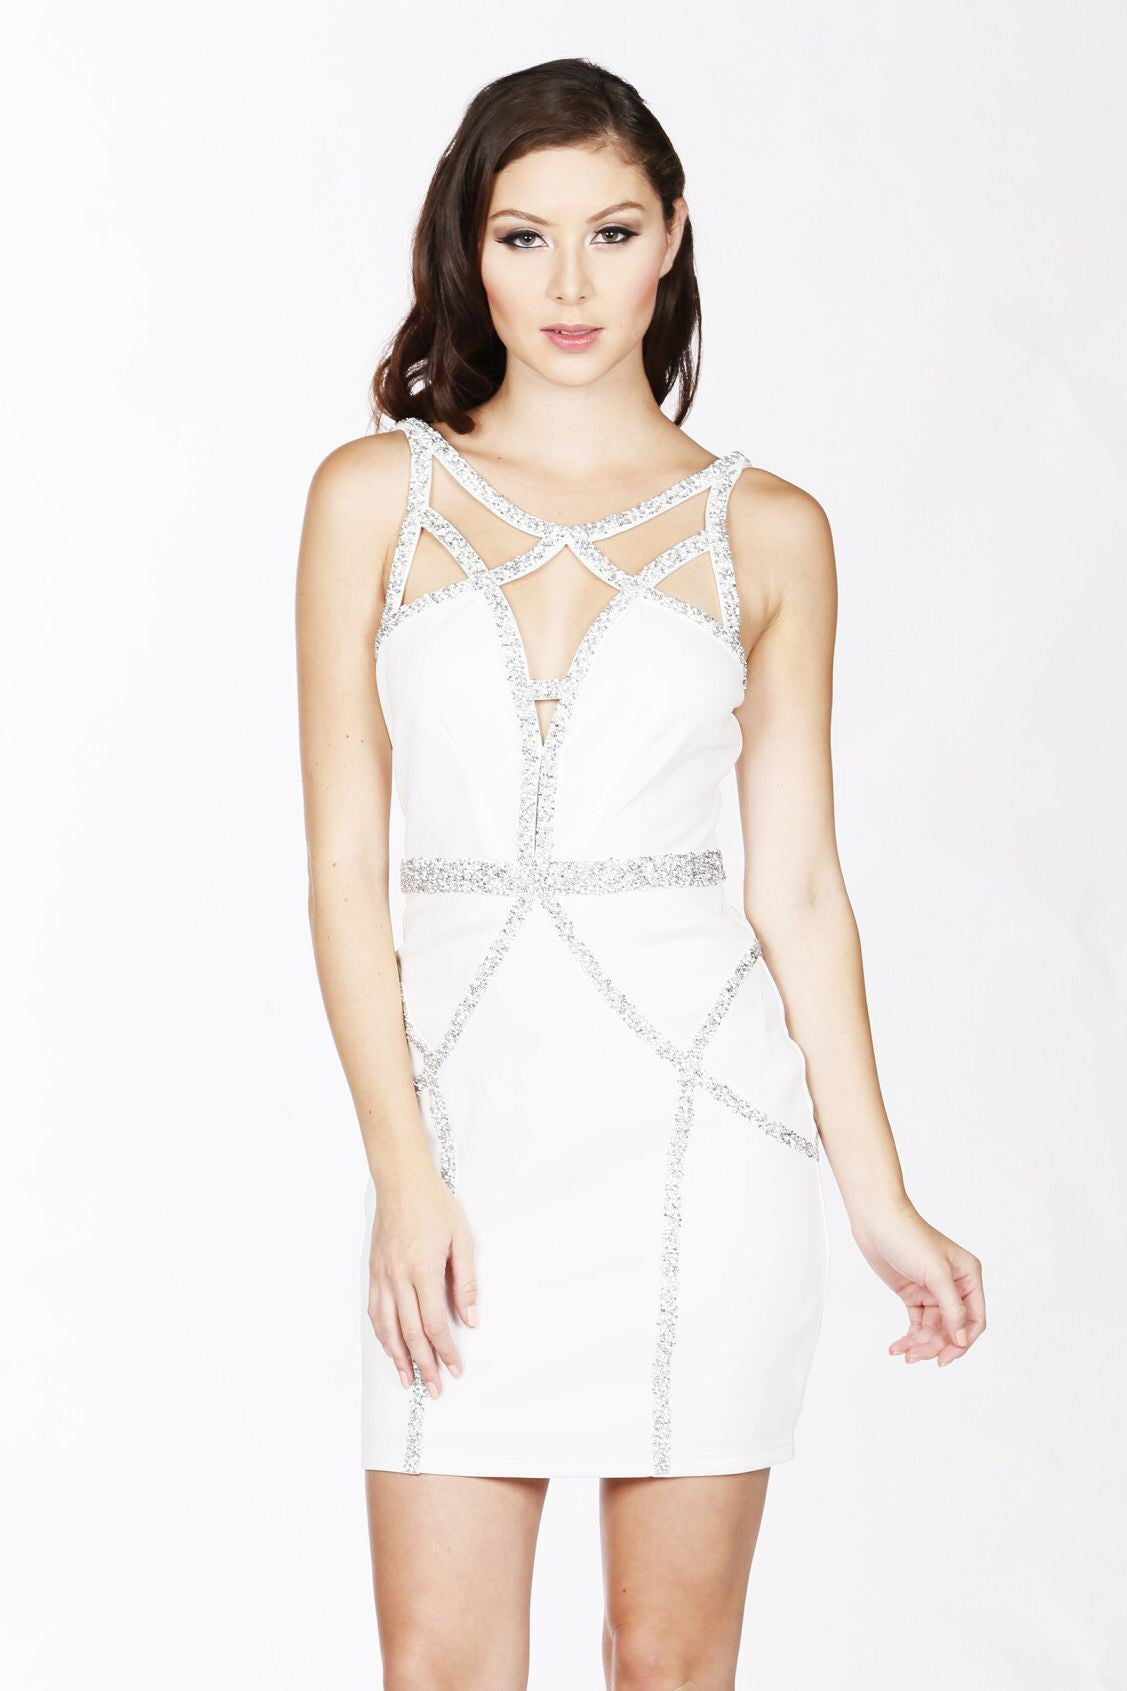 Naughty Grl Sleeveless Halter Cage Bodycon Dress With Rhinestones - White - NaughtyGrl